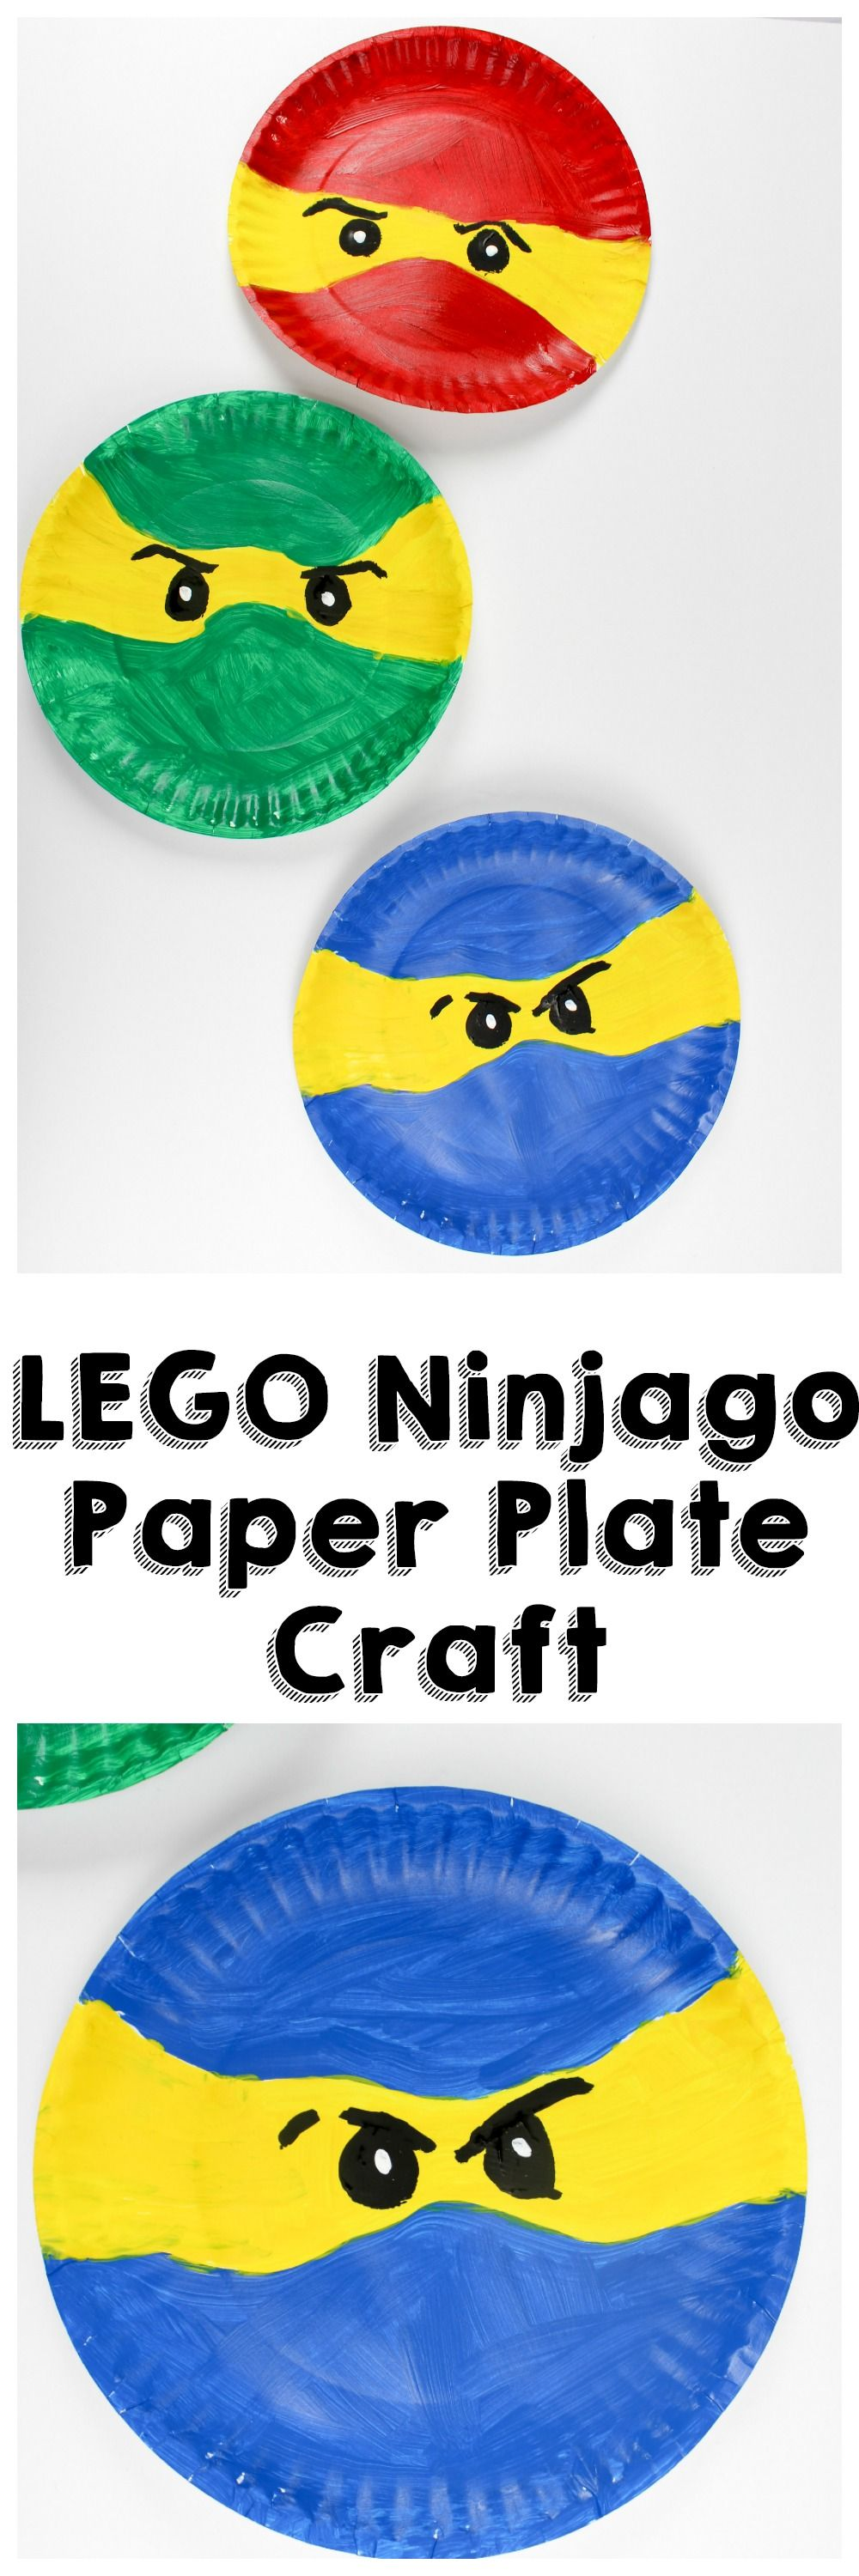 LEGO Ninjago Paper Plate Craft - Sippy Cup Mom  sc 1 st  Pinterest & LEGO Ninjago Paper Plate Craft | Paper plate crafts Lego ninjago ...